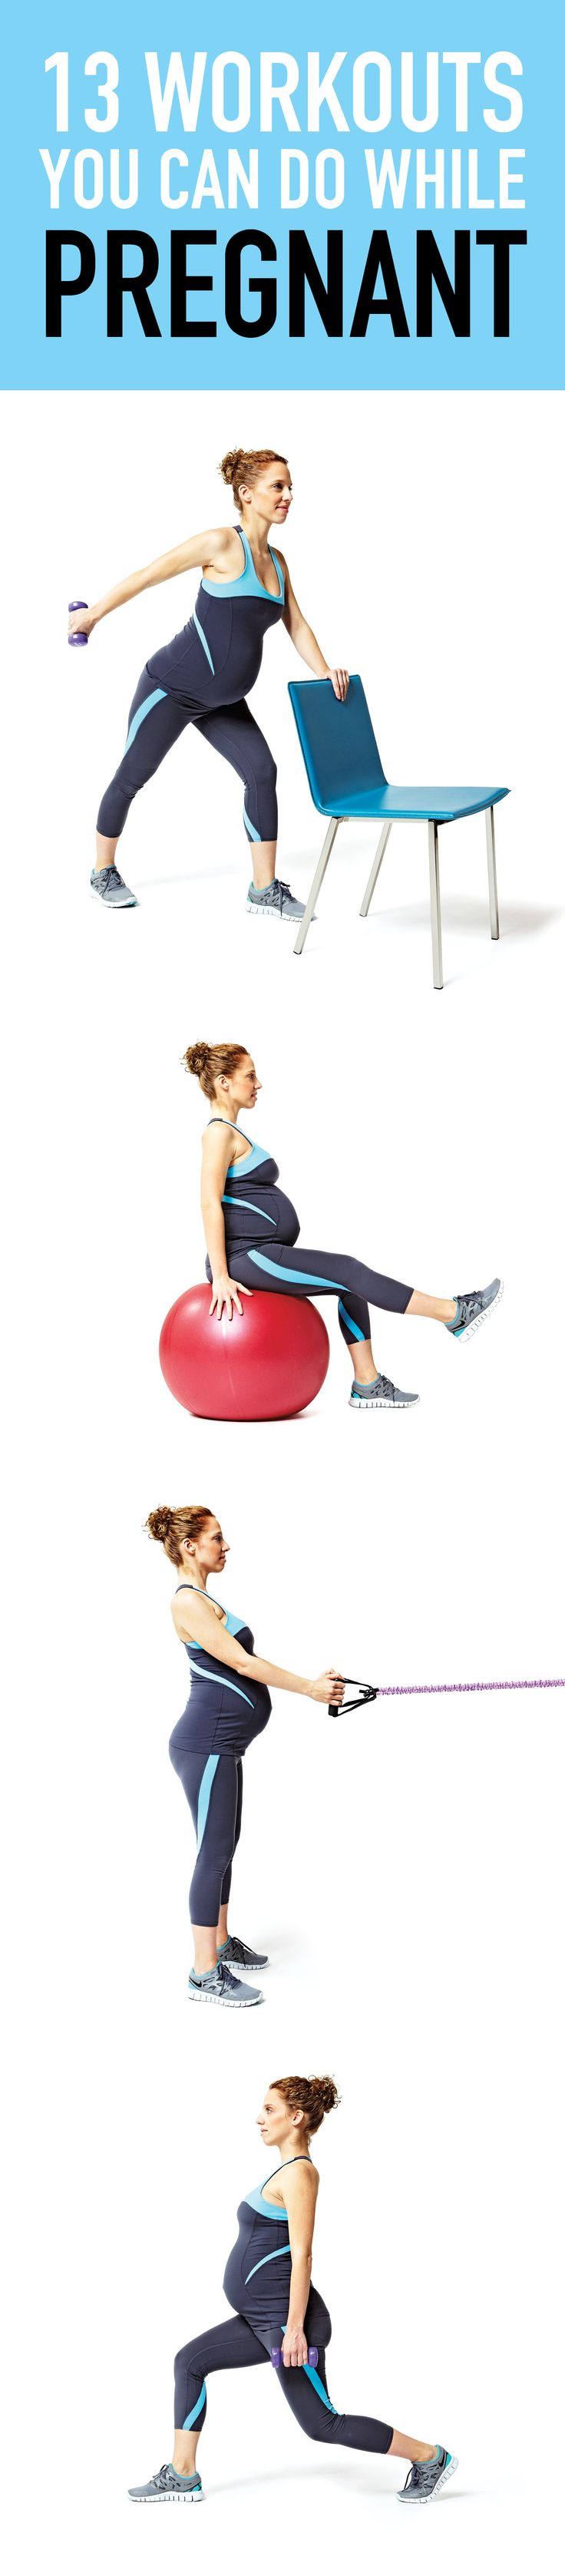 Exercising throughout pregnancy is one of the best gifts you can give yourself—and your baby. Here are some easy workouts you can do while pregnant.